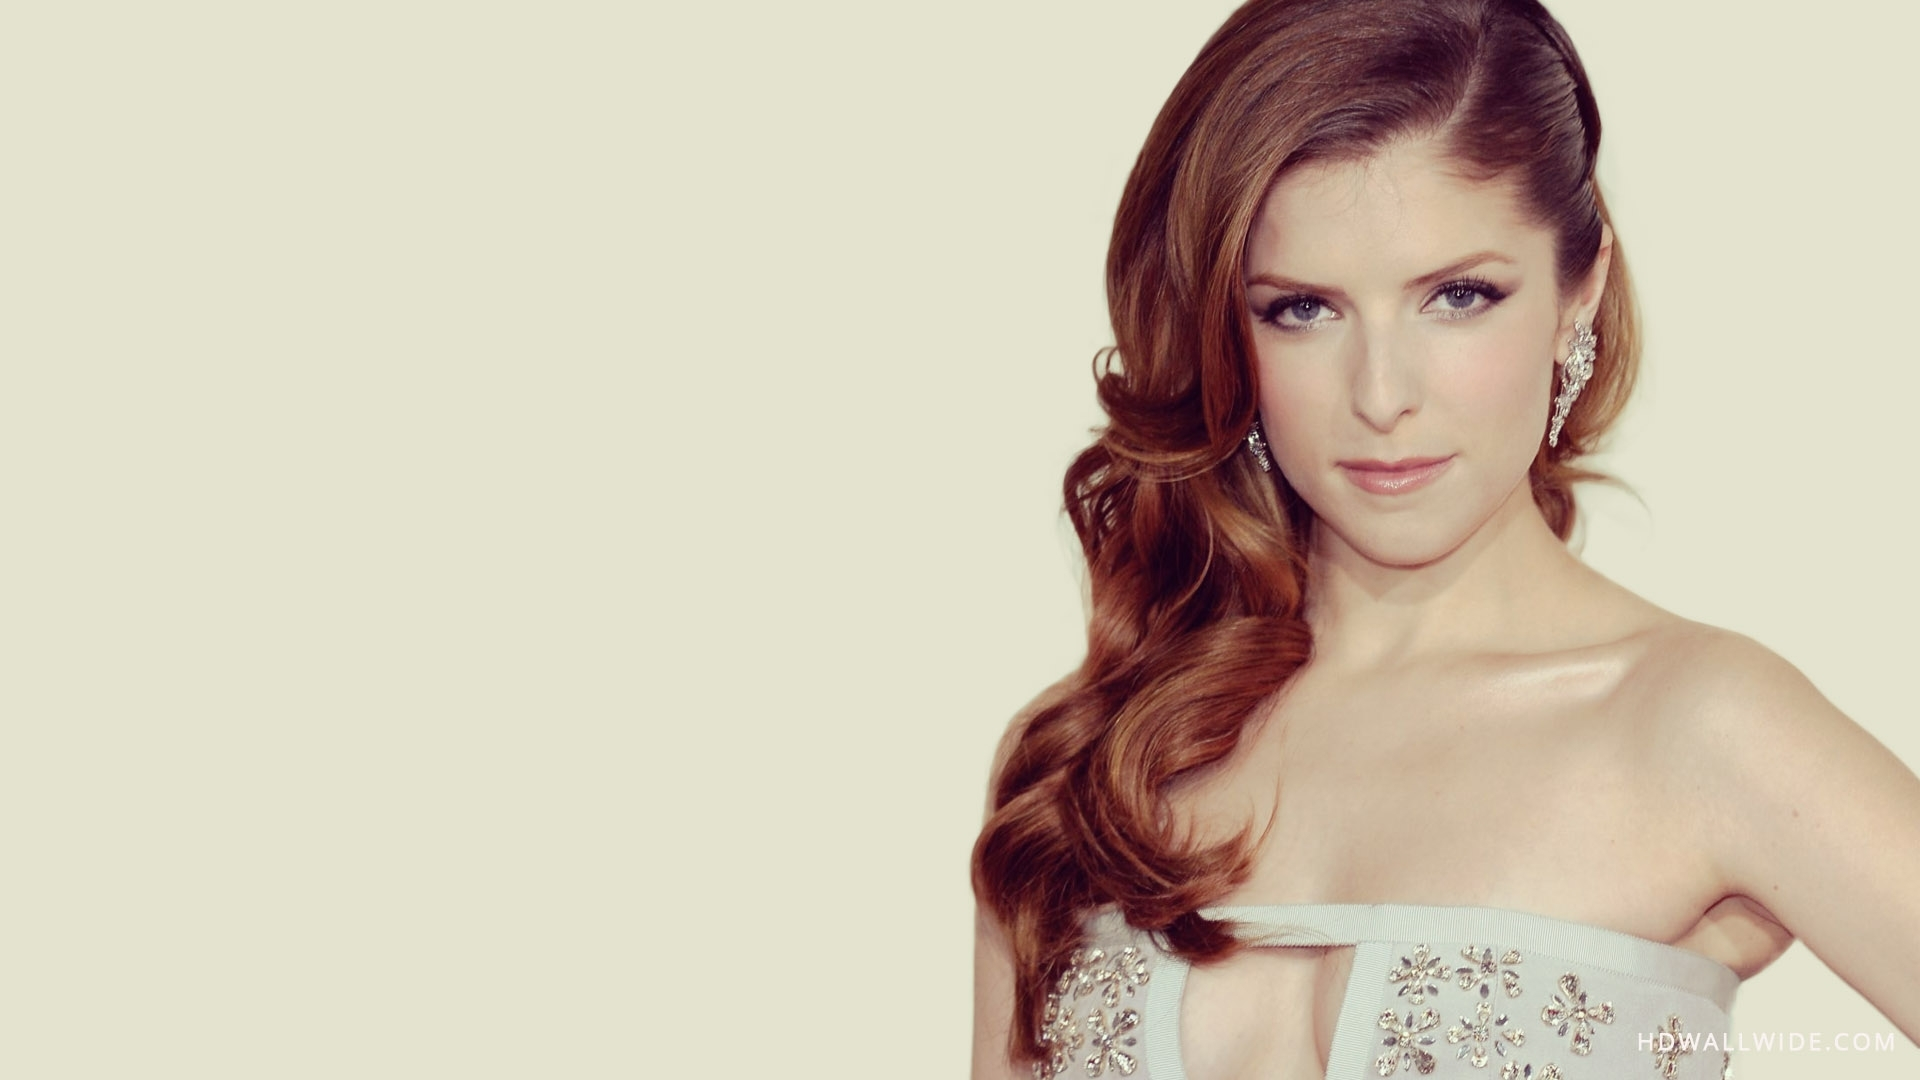 anna kendrick wallpaper for desktop | pixelstalk